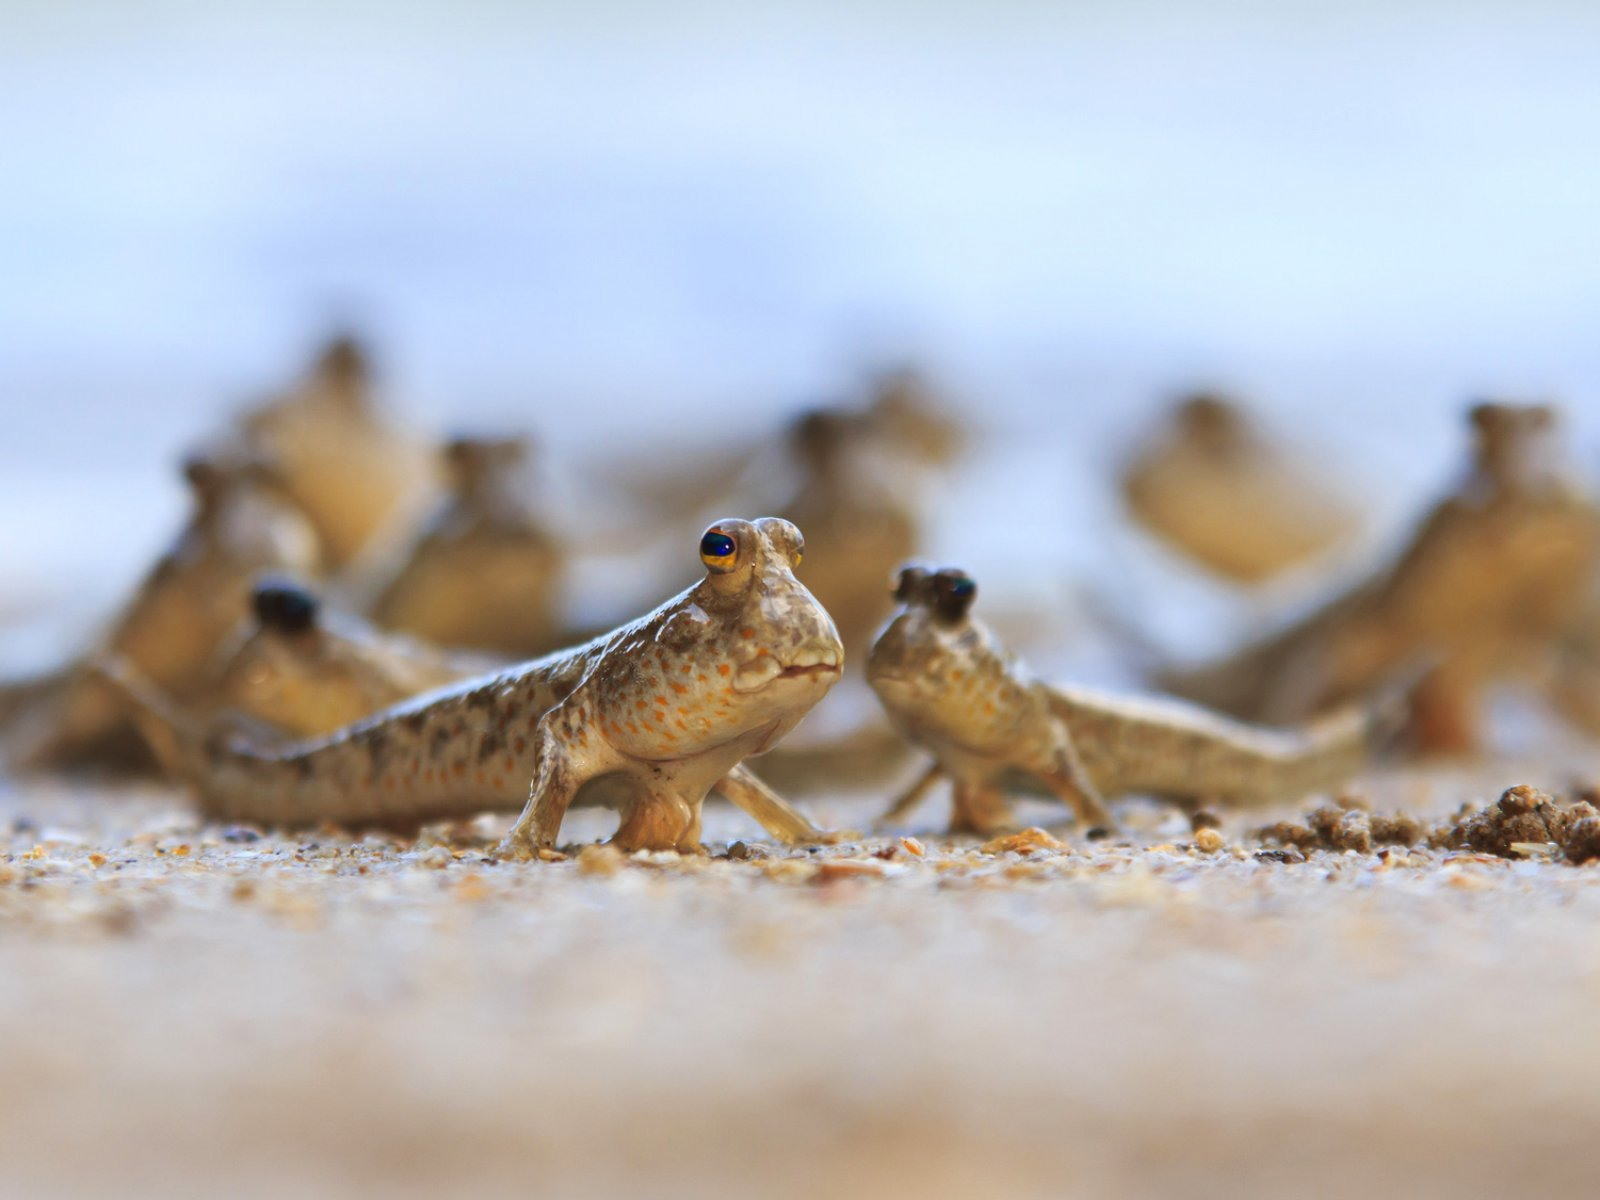 How to see a mudskipper in Phuket